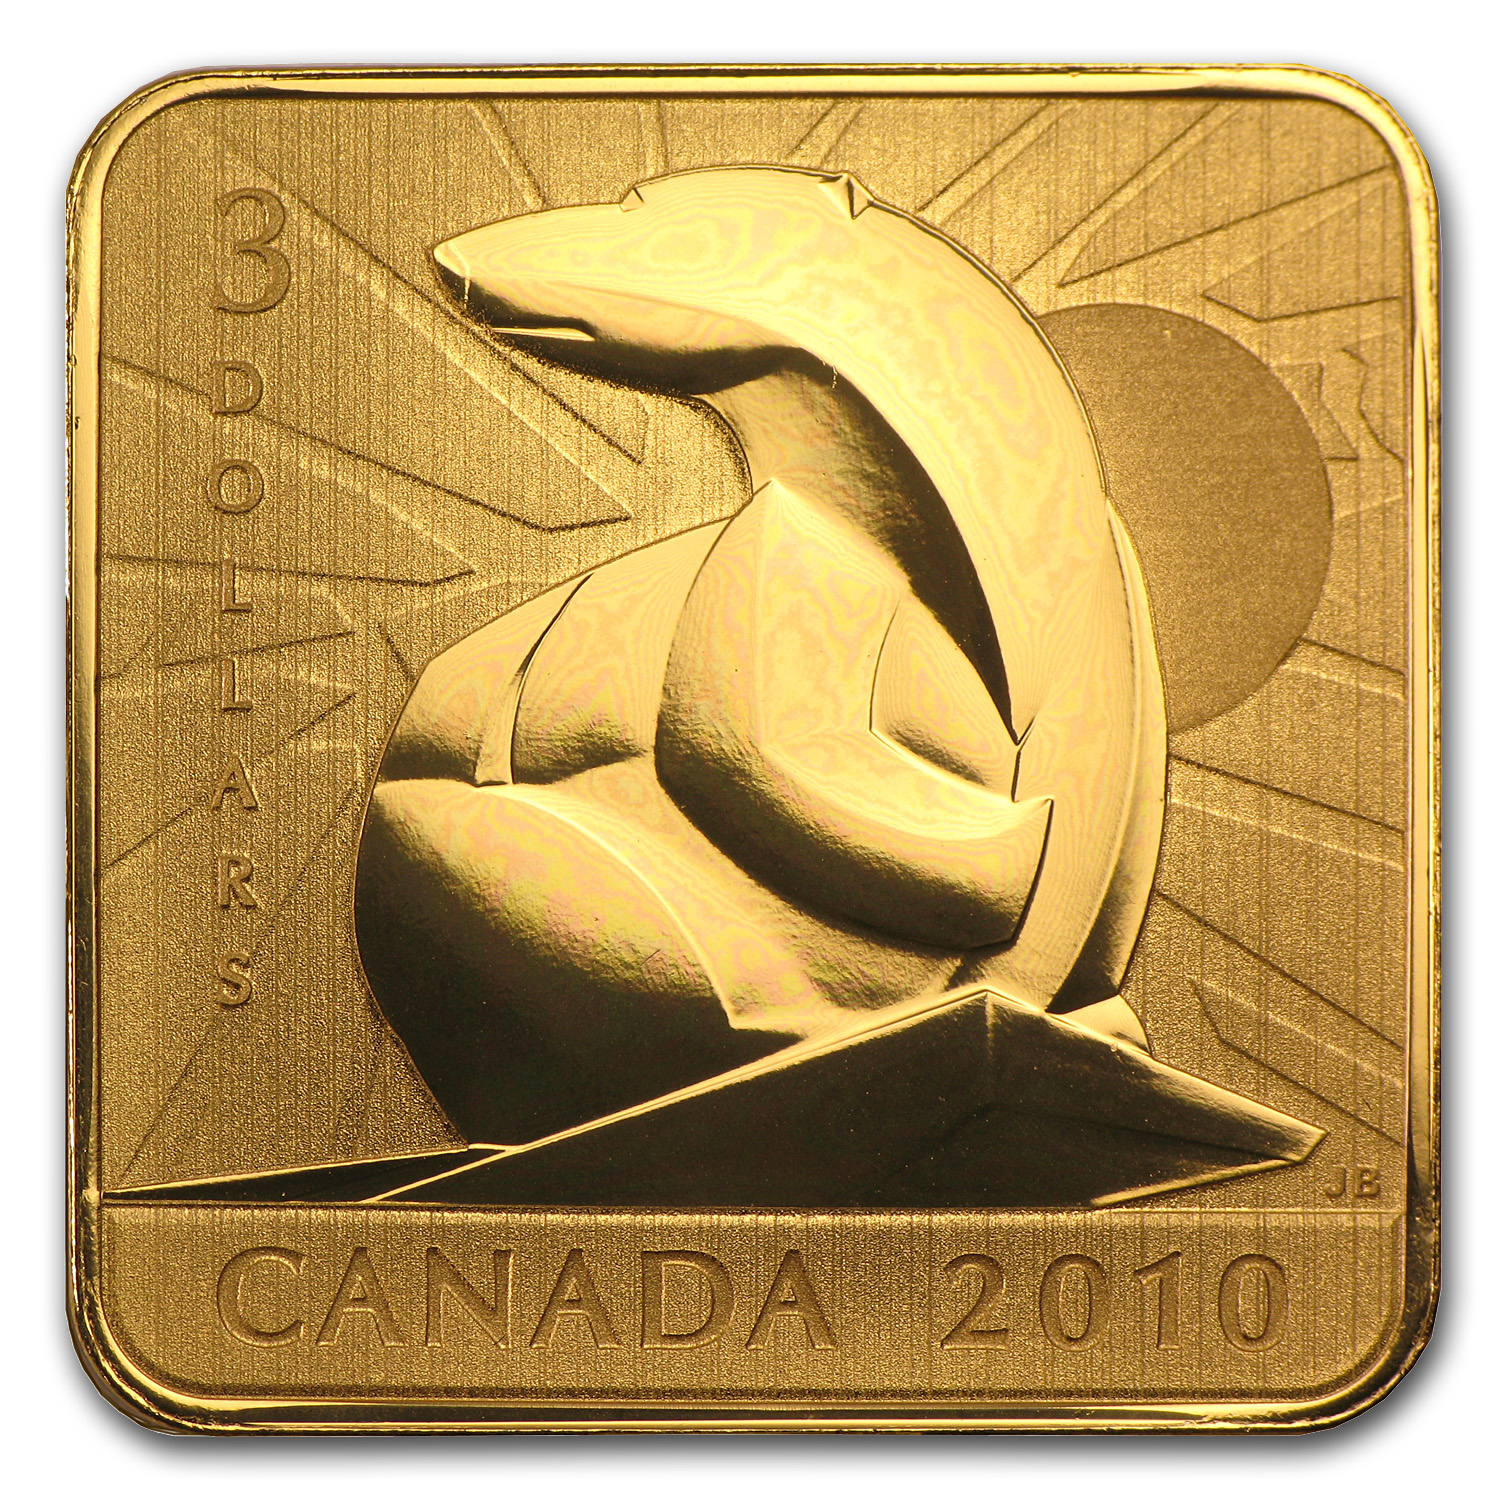 2010 Canada Silver $3 Wildlife Conservation (Polar Bear)